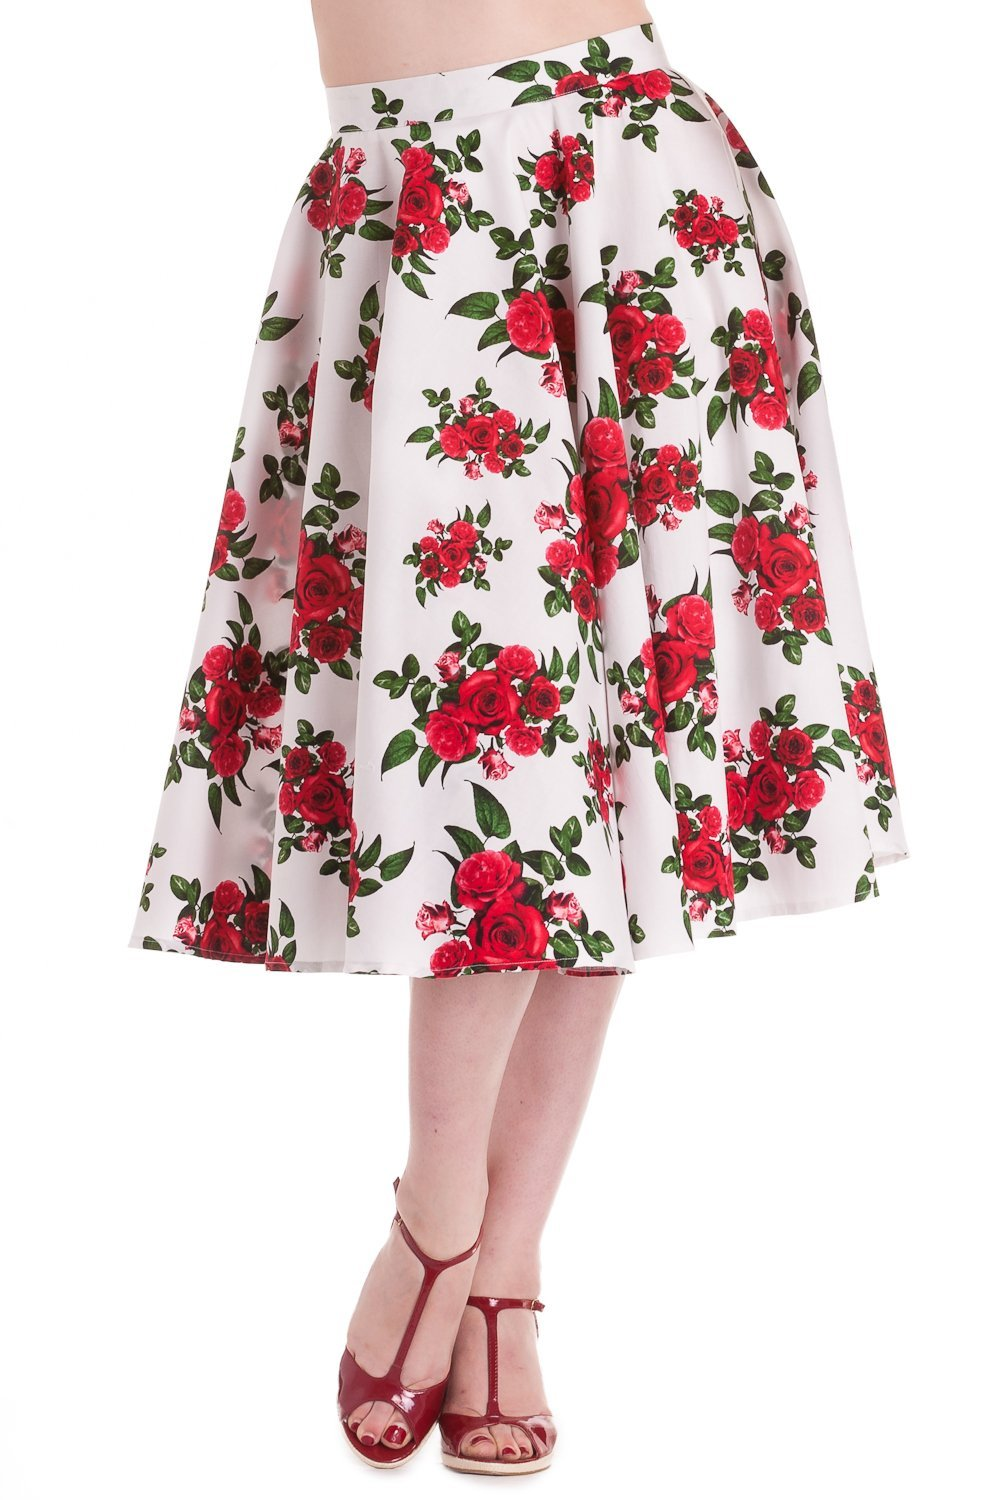 Hell Bunny Cannes Floral White/Red Roses Skirt - Bohemian Finds